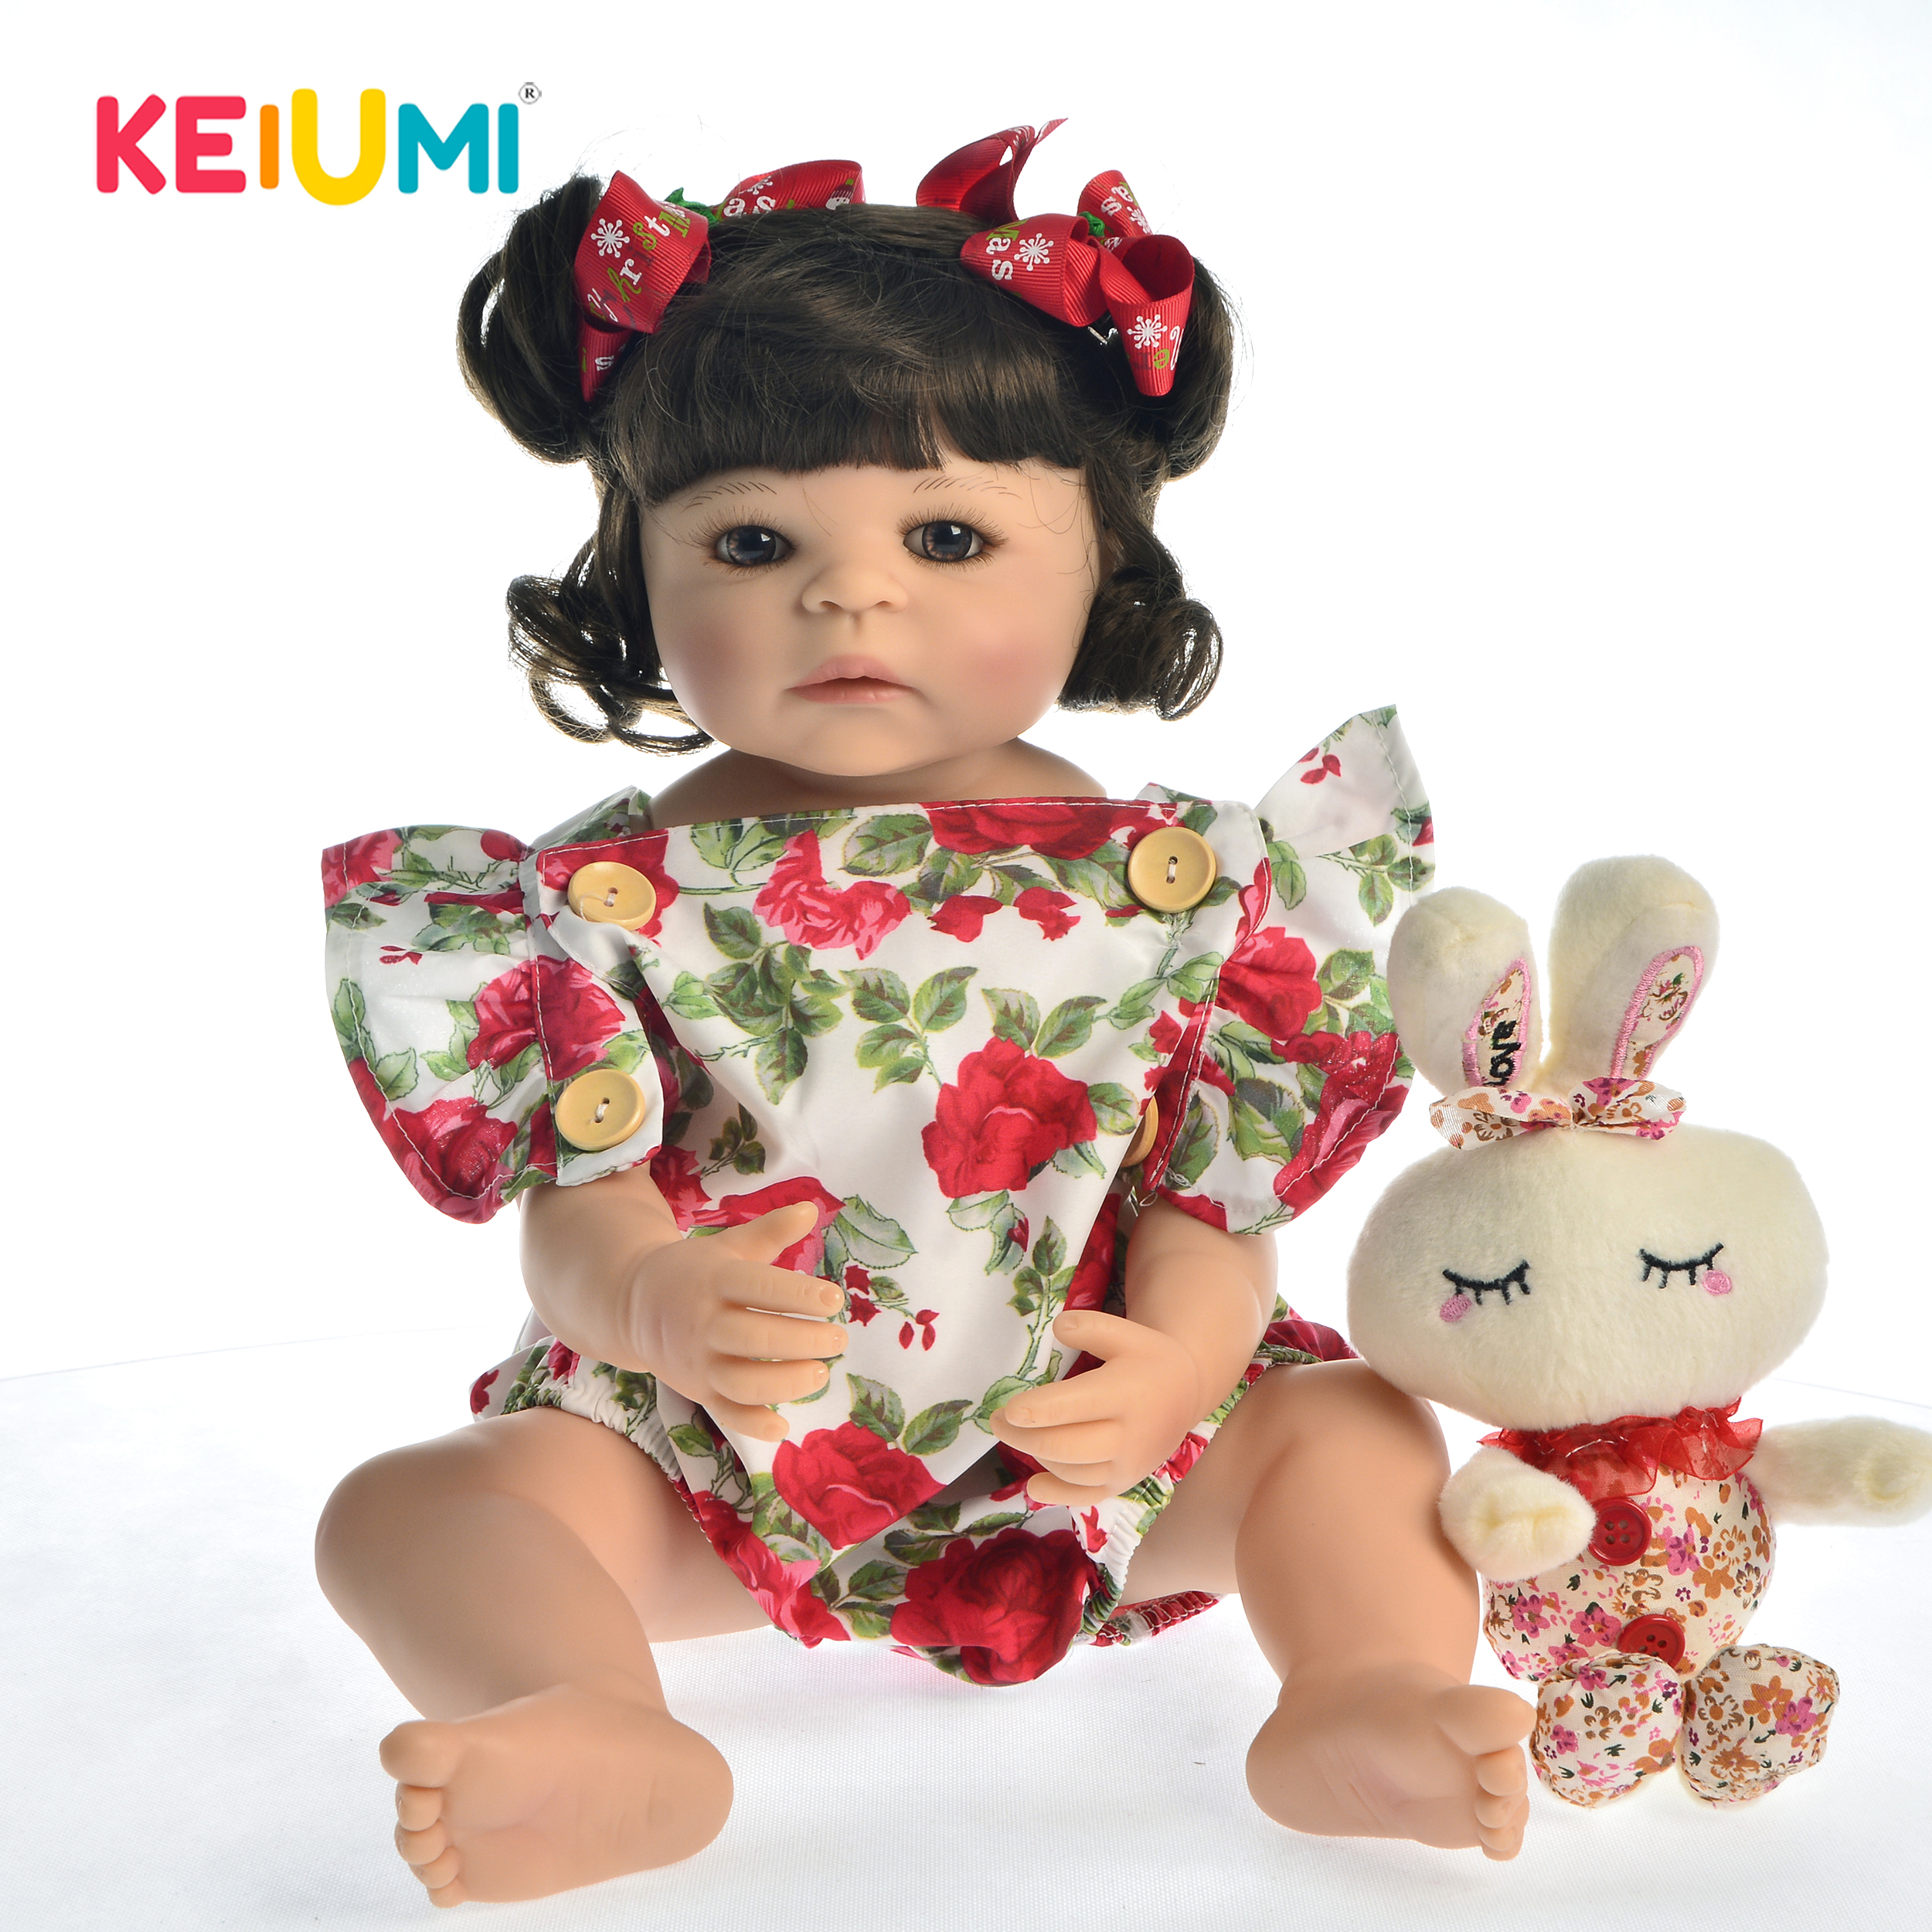 Hot Sale 22 55 cm Silicone Full Body Reborn Baby Doll Toy For Girl Princess Babies